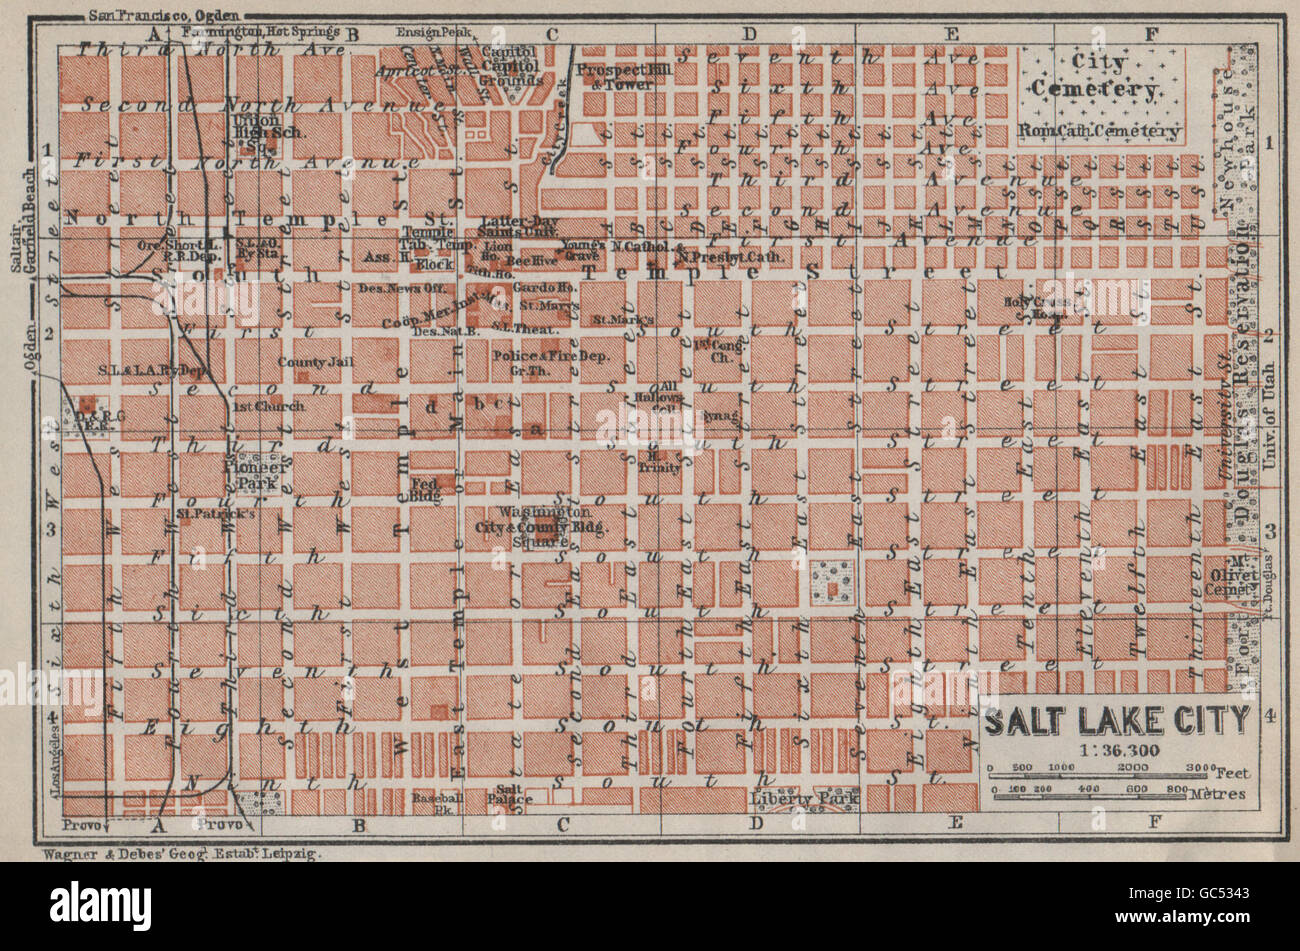 SALT LAKE CITY antique town city plan. Utah. BAEDEKER, 1909 antique ...